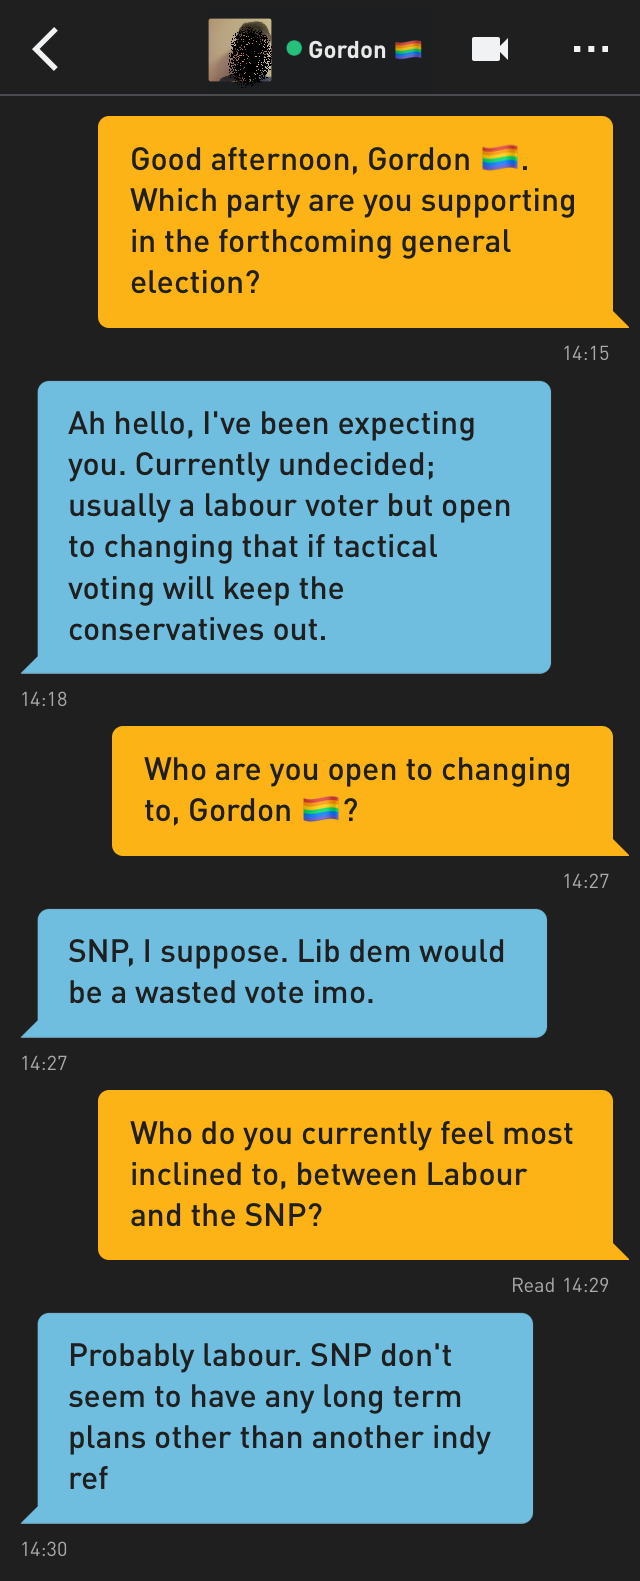 Me: Good afternoon, Gordon 🏳️‍🌈. Which party are you supporting in the forthcoming general election?